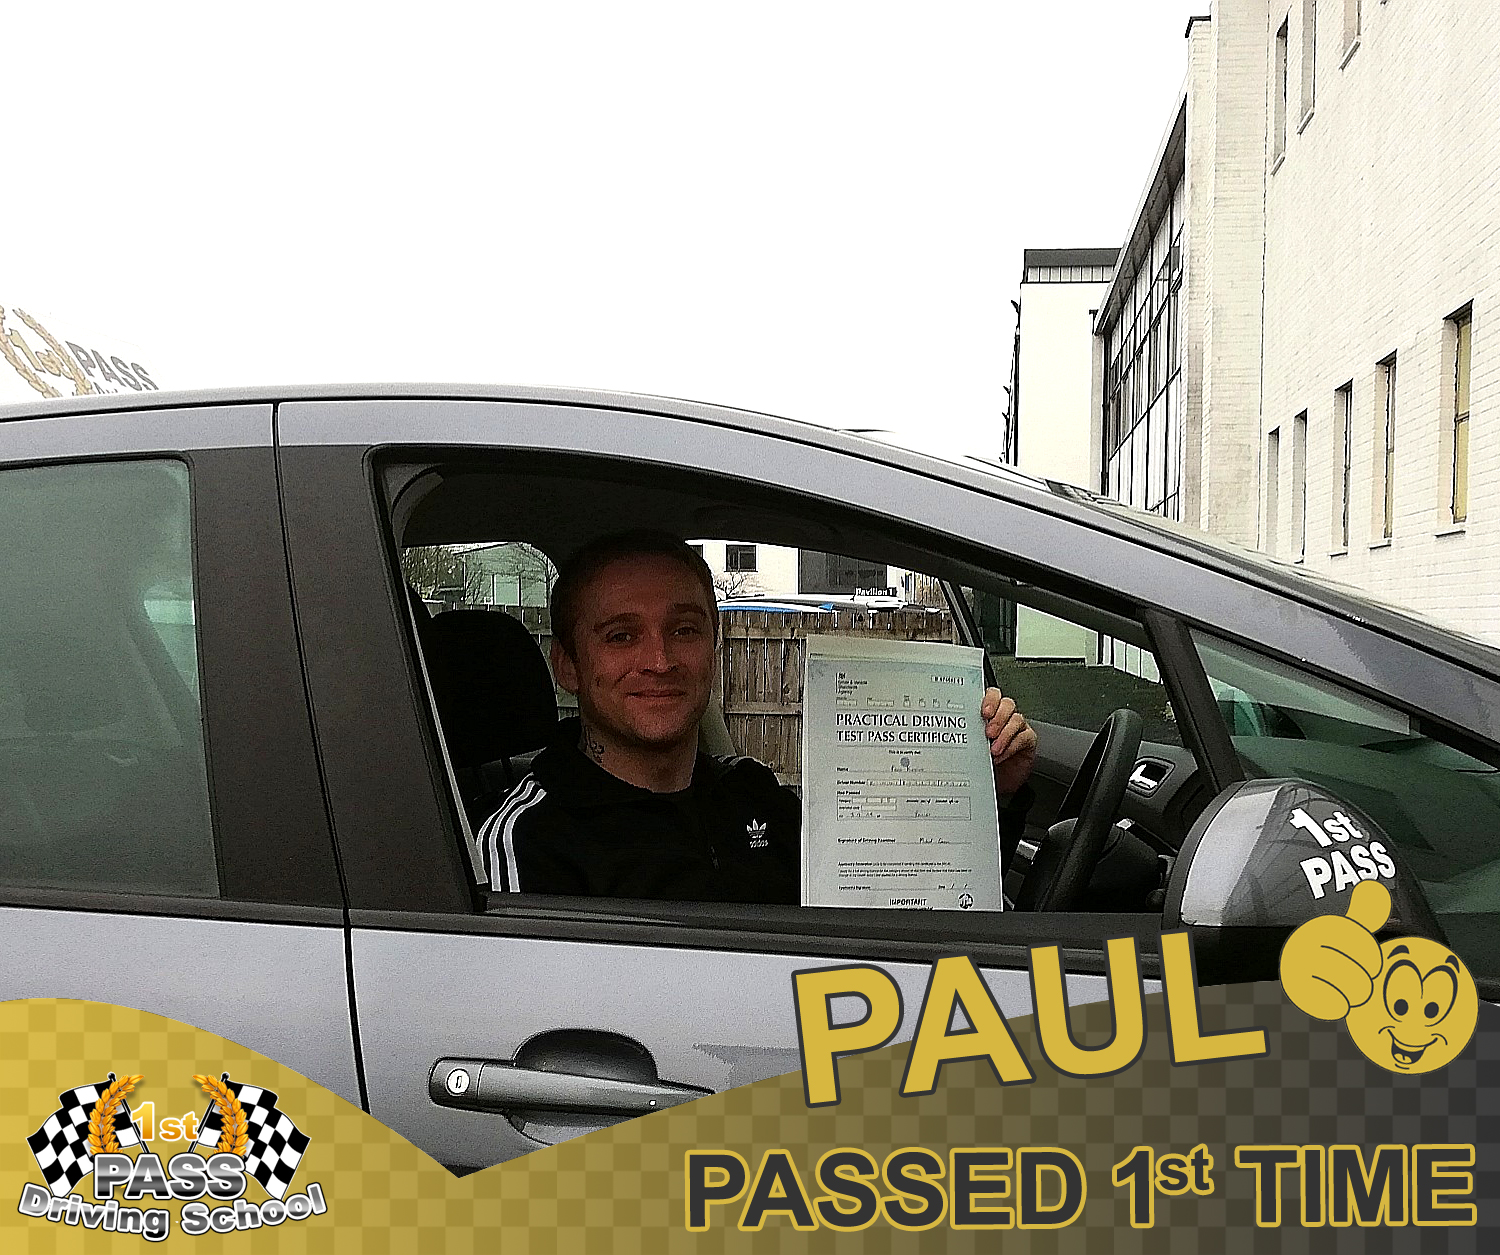 Paul took driving lessons with 1st Pass Driving School – Automatic & Manual Driving Lessons